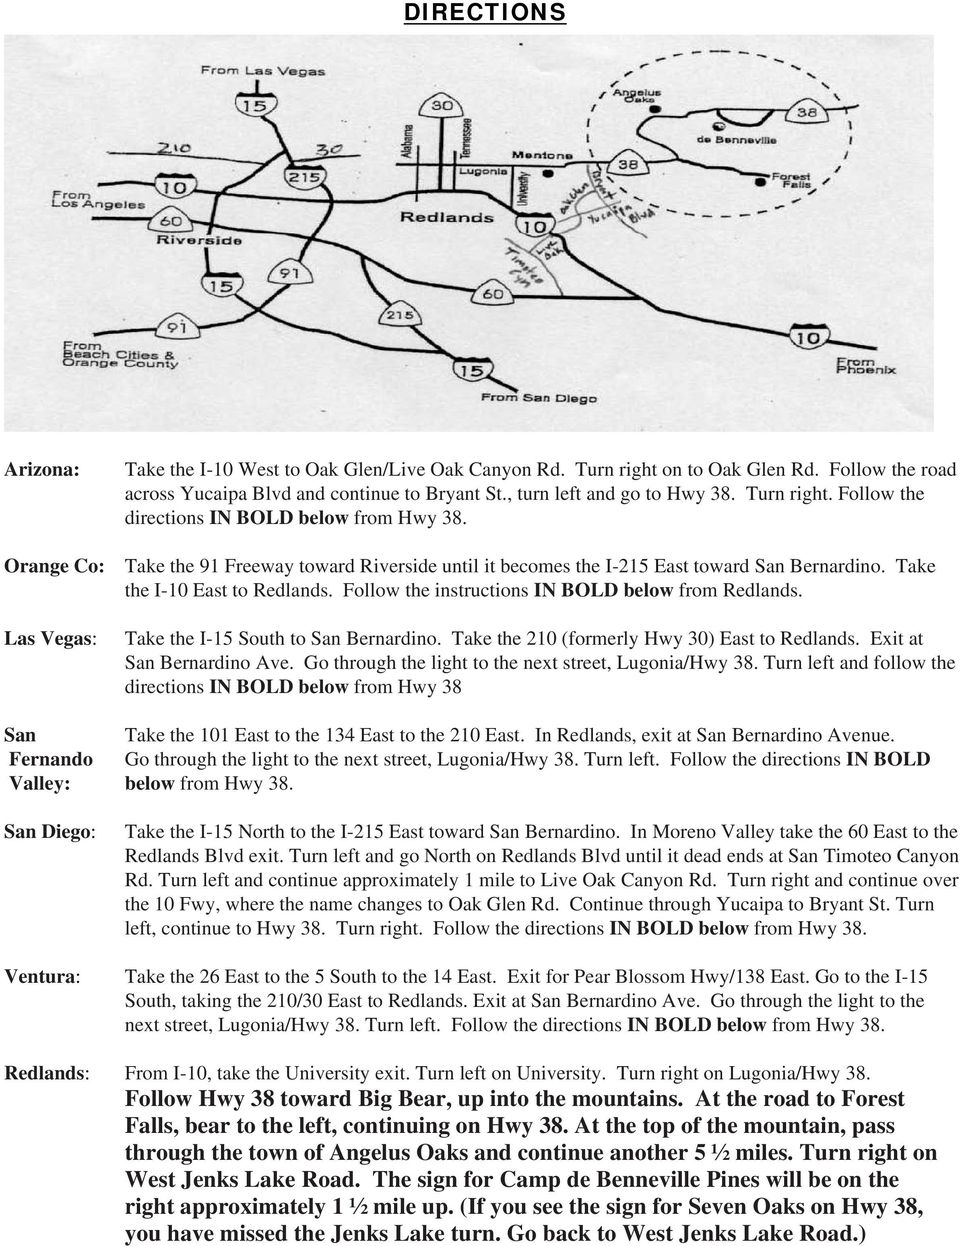 Follow the instructions IN BOLD below from Redlands. Las Vegas: Take the I-15 South to San Bernardino. Take the 210 (formerly Hwy 30) East to Redlands. Exit at San Bernardino Ave.